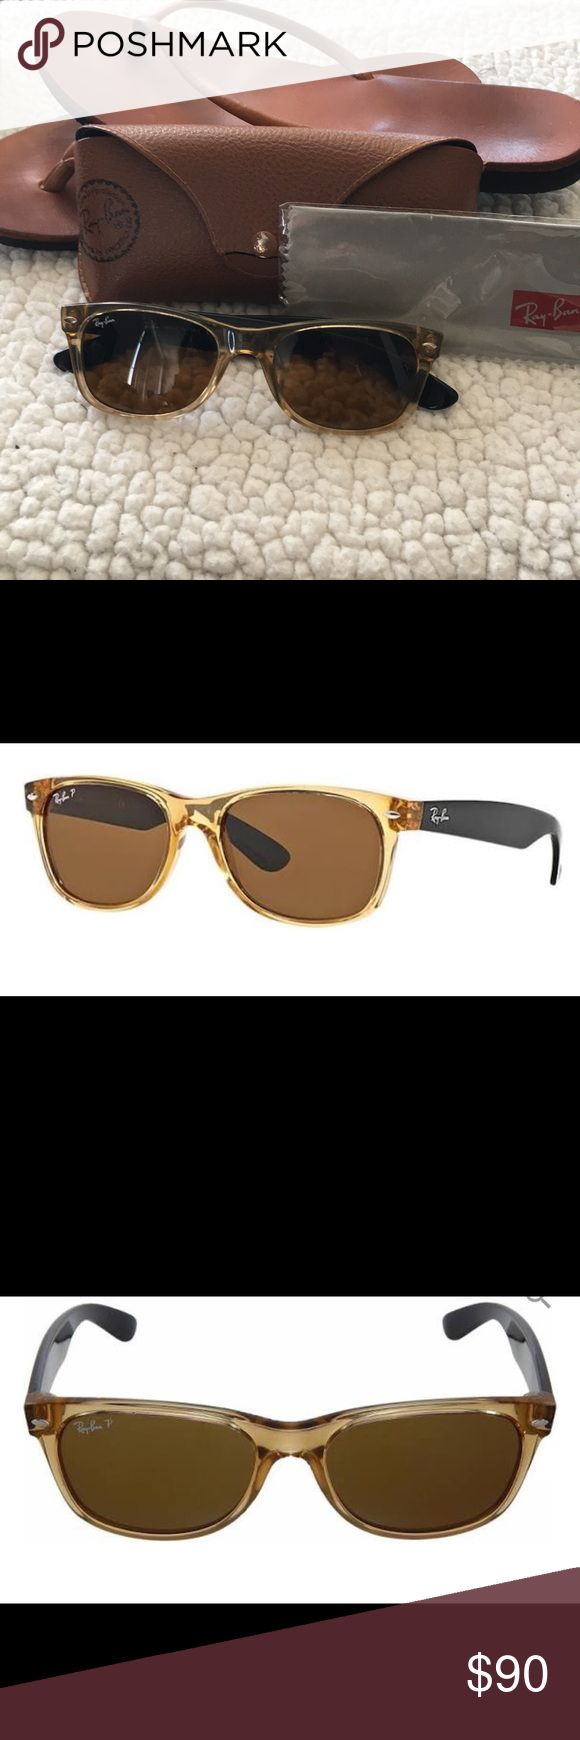 Ray Bans Wayfarer RB2132 New Wayfarer Design Polarized Color: Ivory/Honey Size: 55-18 Lens Size:55mm Bridge Size: 18mm Arm Length: 145mm Normal wear, excellent condition. Scratch on arm (pictured) Hairline scratch on lens (pictured) Ray Ban Accessories Sunglasses